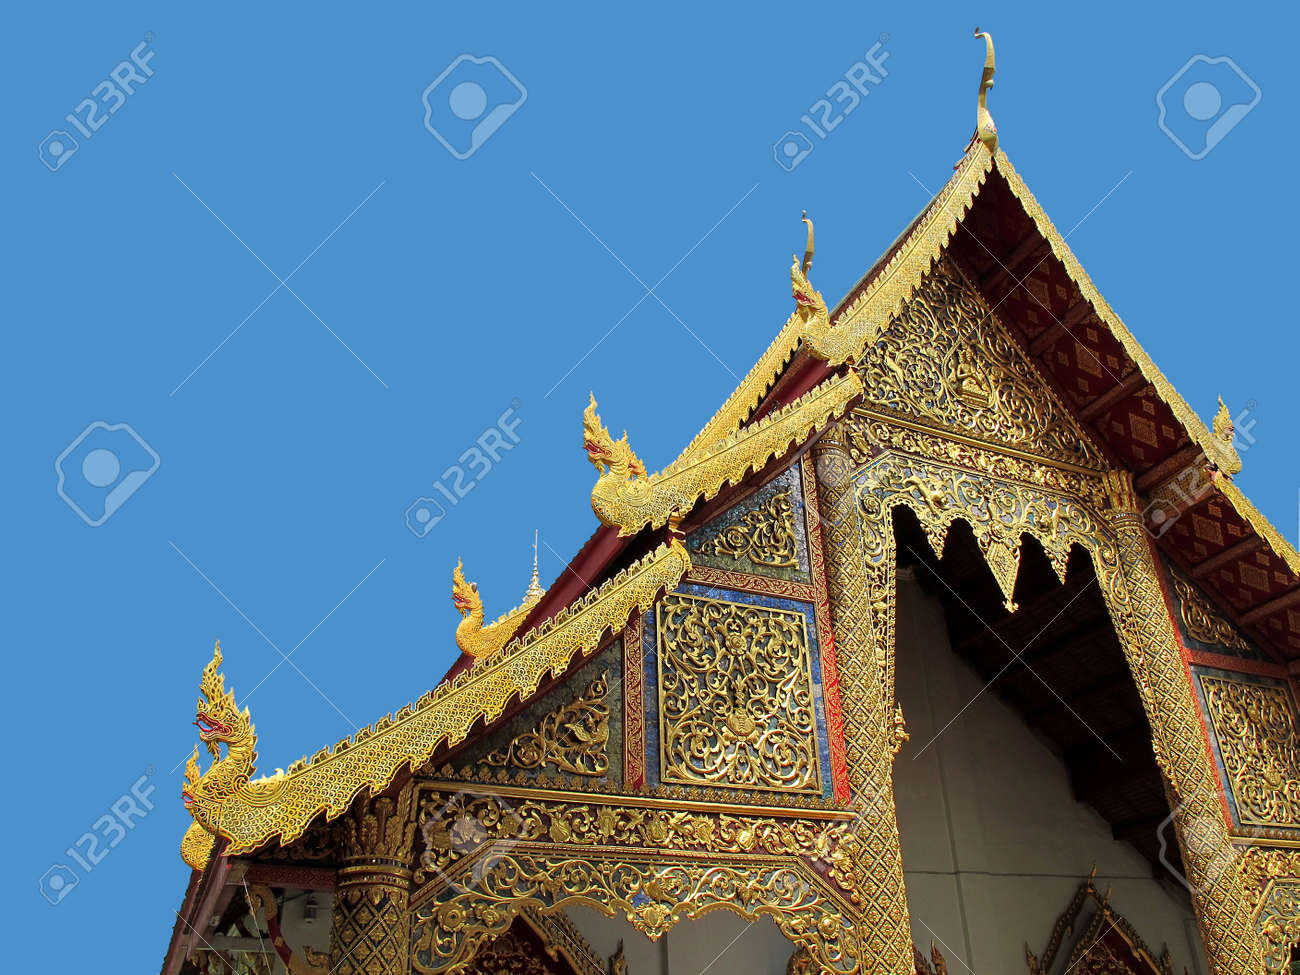 Gable roof of the temple in Thailand with clipping path Stock Photo - 12379528